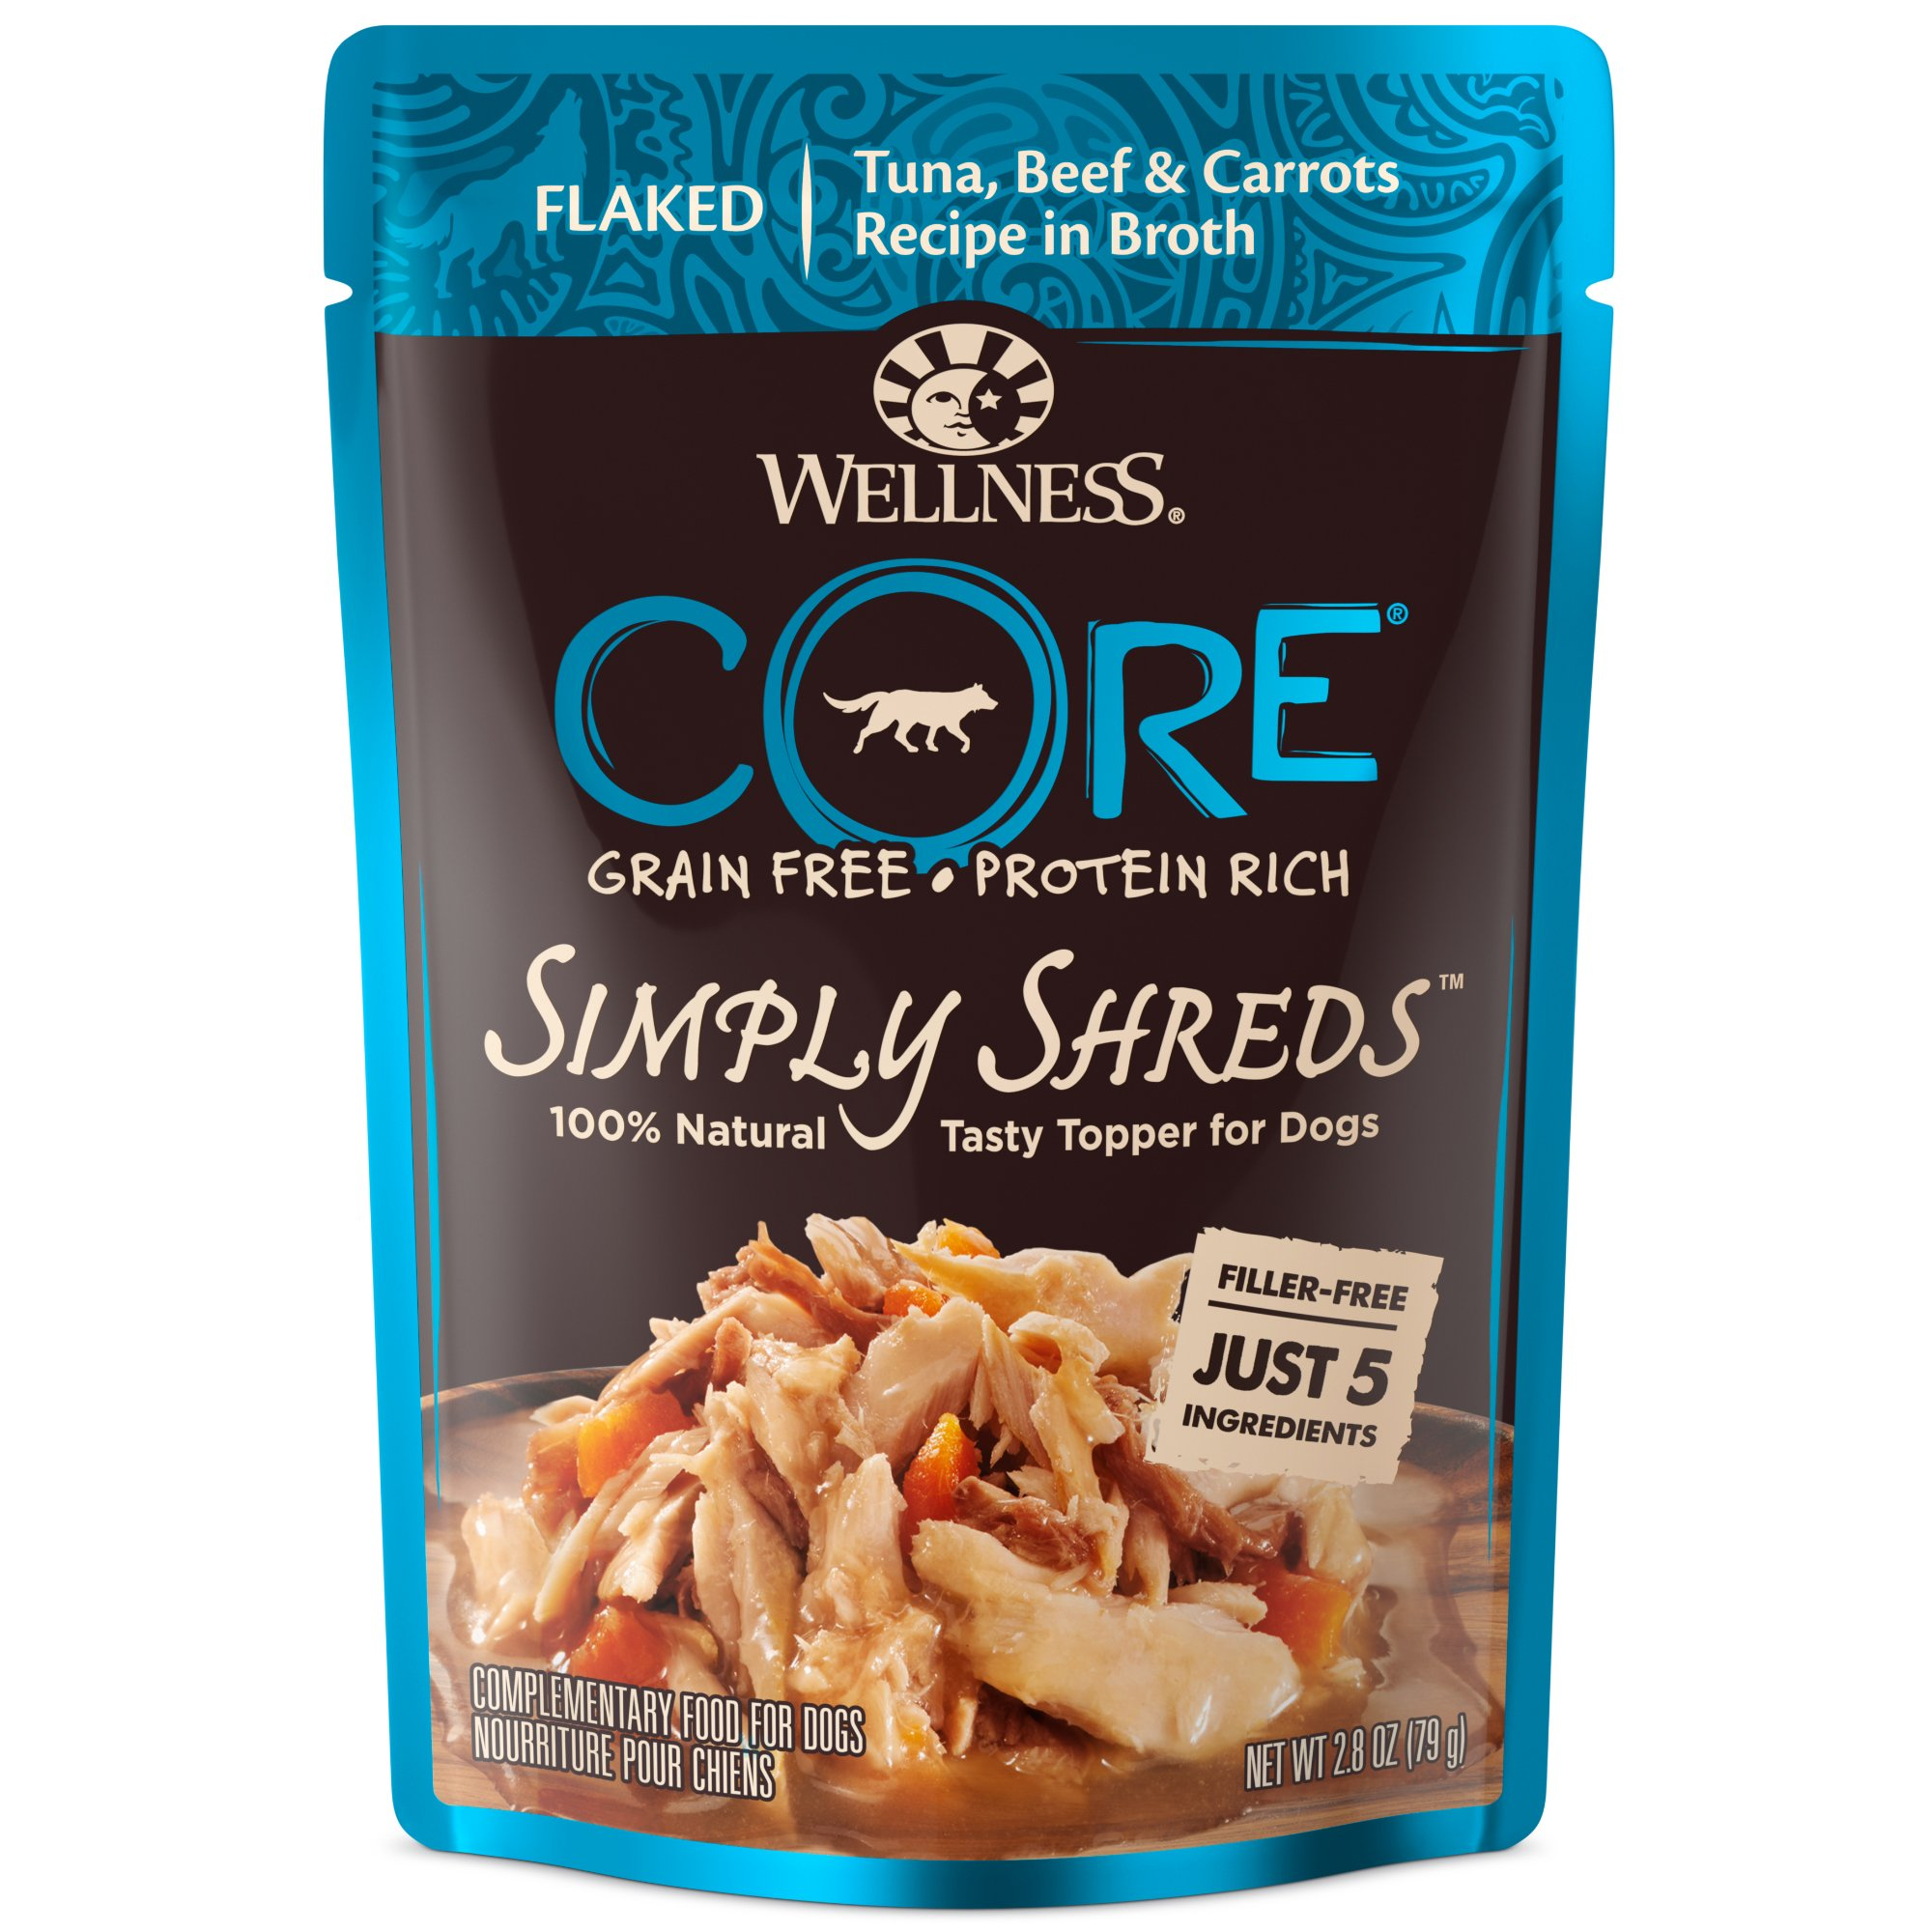 Wellness CORE Simply Shreds Natural Grain Free Wet Dog Food Mixer or Topper, Tuna, Beef & Carrots, 2.8-Ounce Pouch (12-pack)